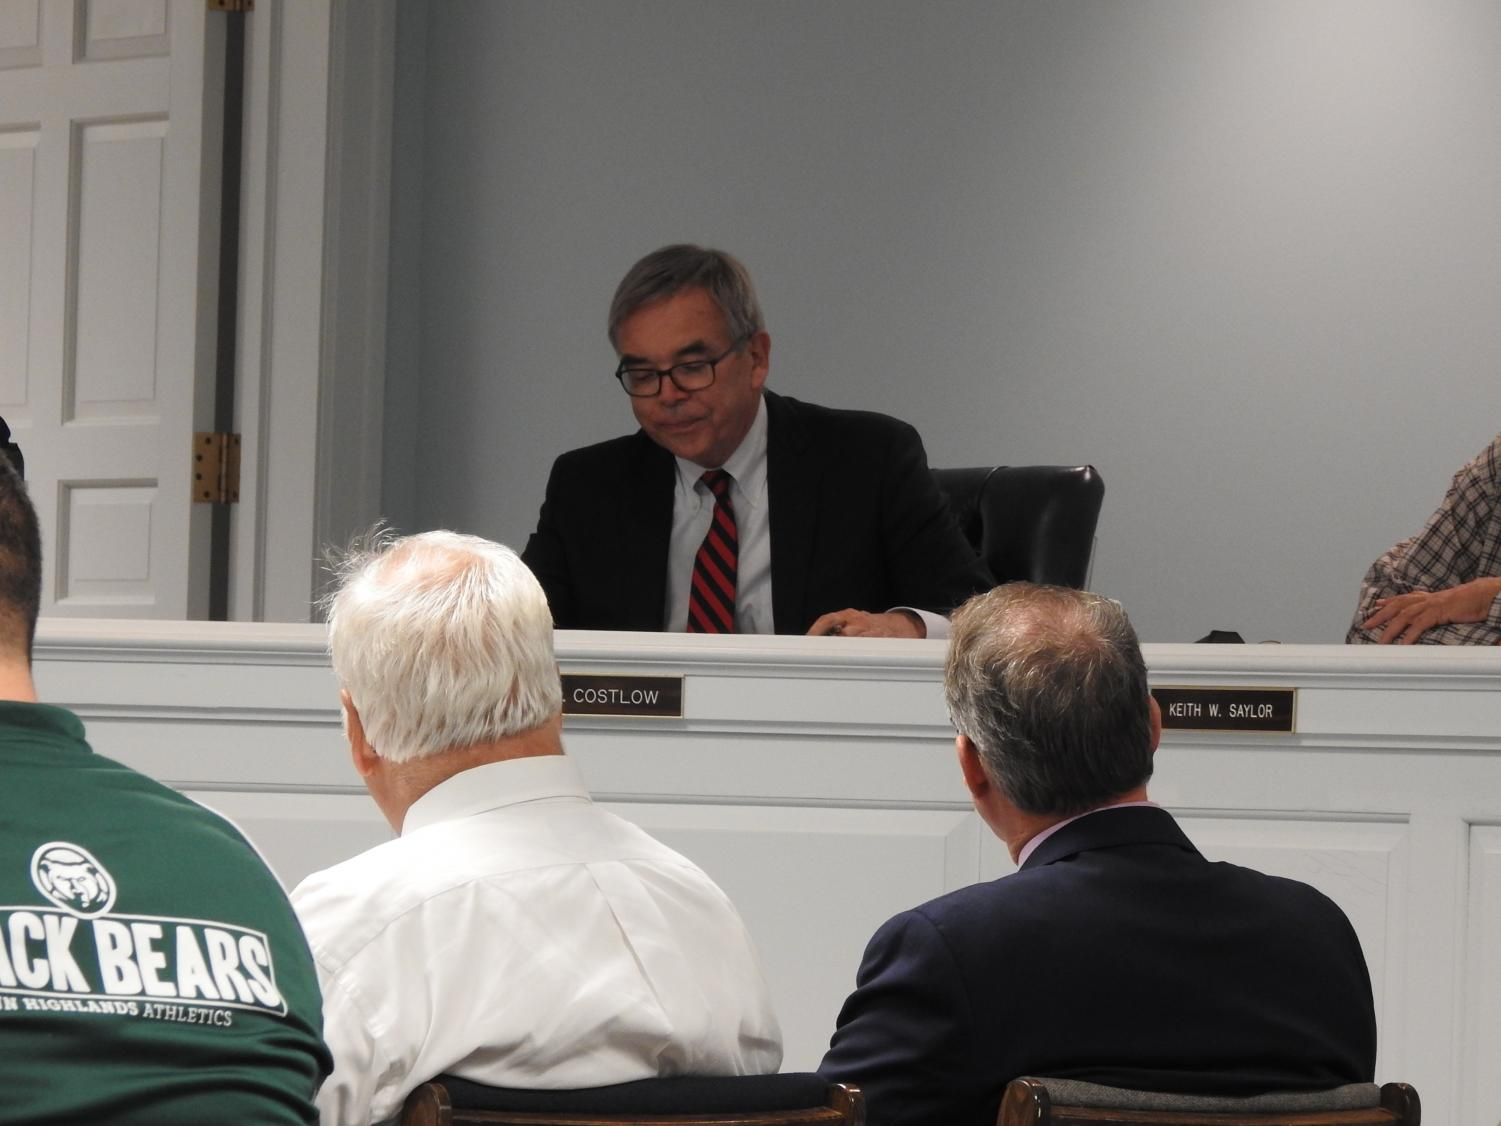 Richland Township supervisors' solicitor Gary Costlow at an Oct. 29 meeting.